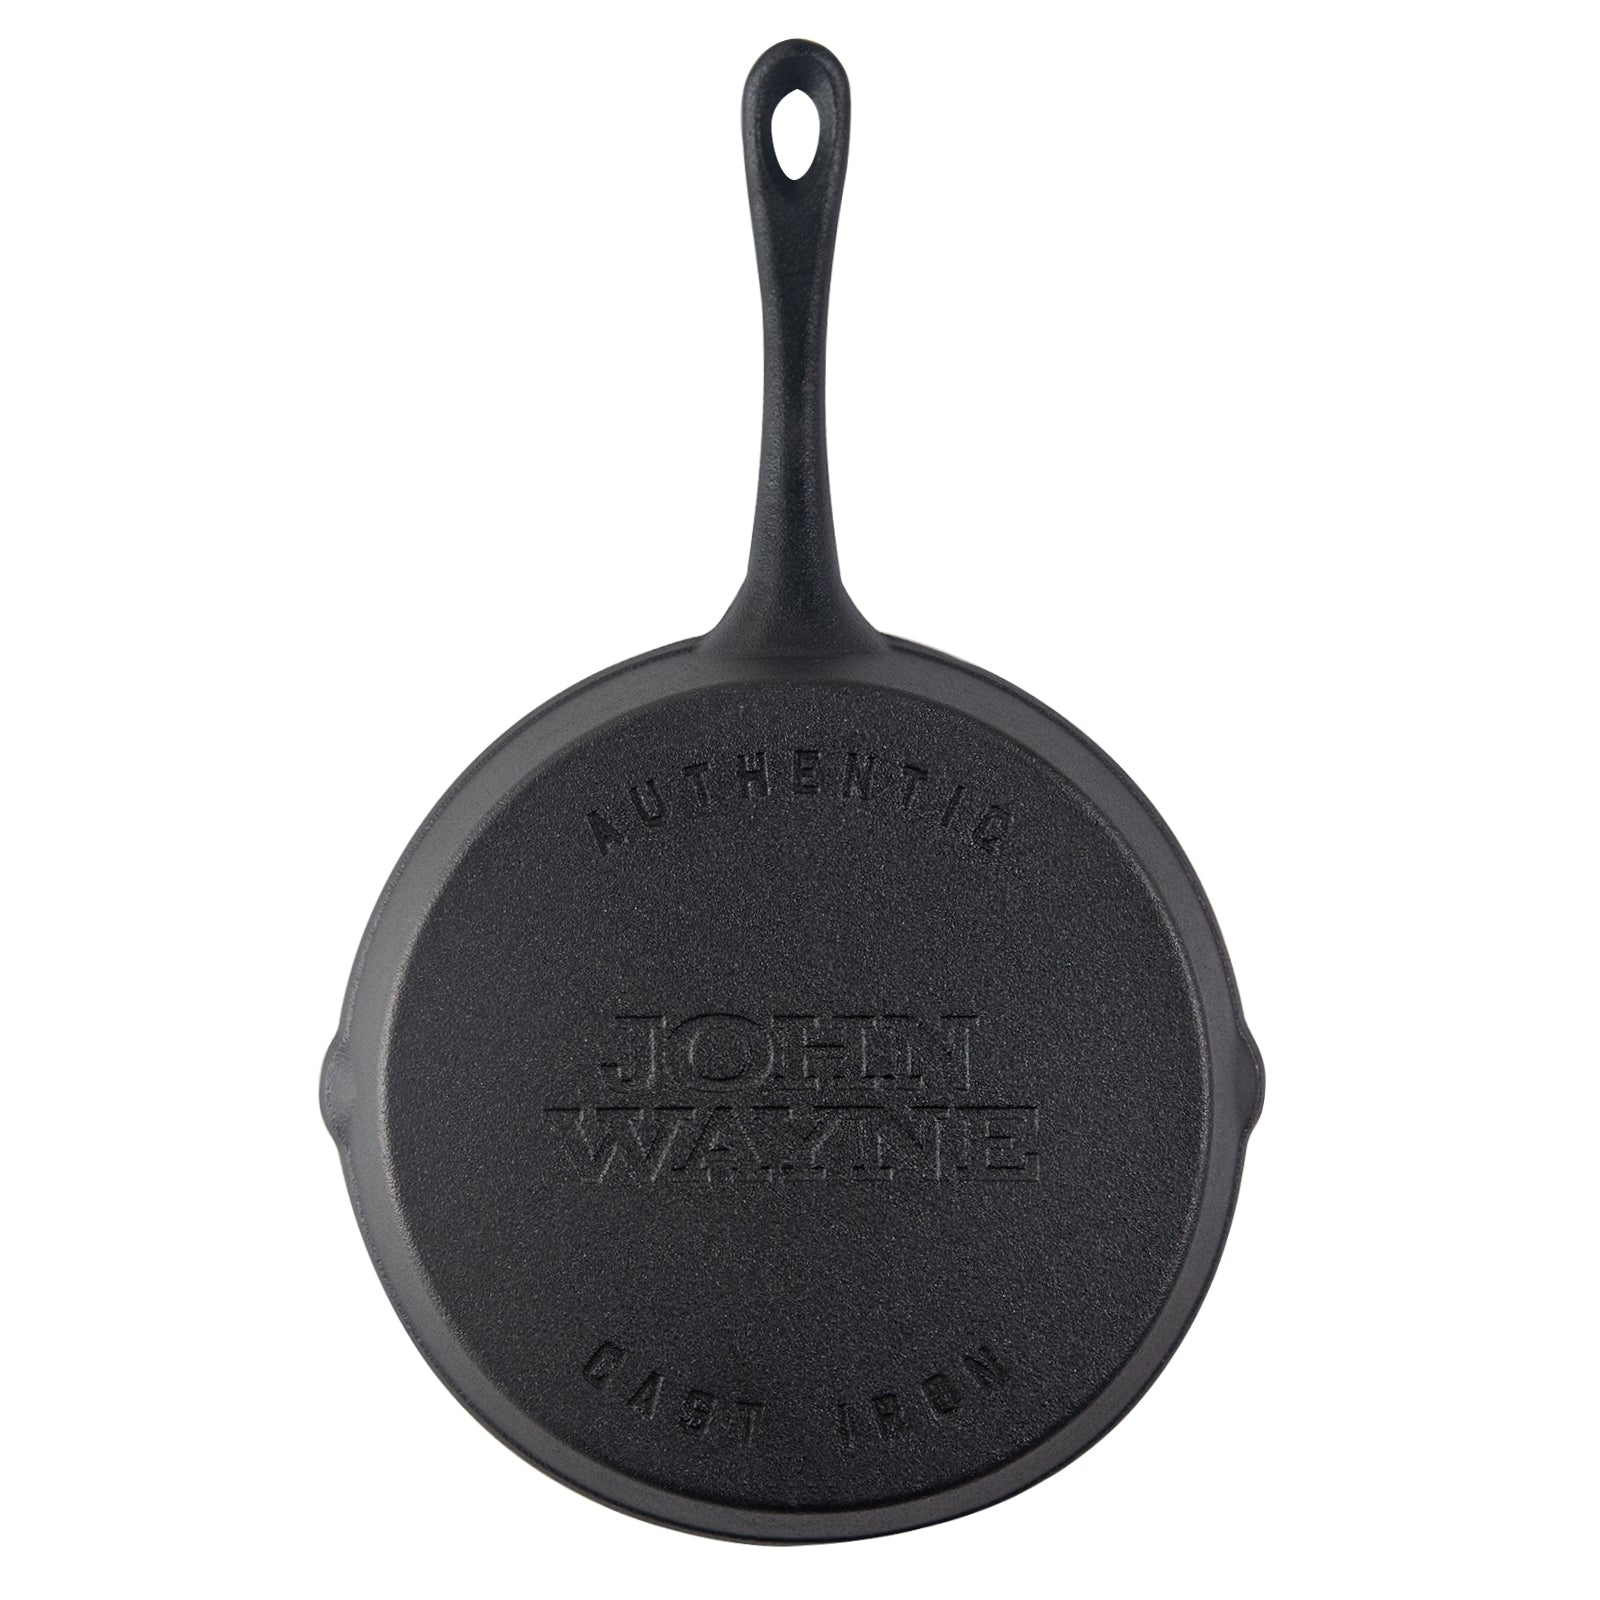 "John Wayne 10"" Pre-Seasoned Cast Iron Skillet"